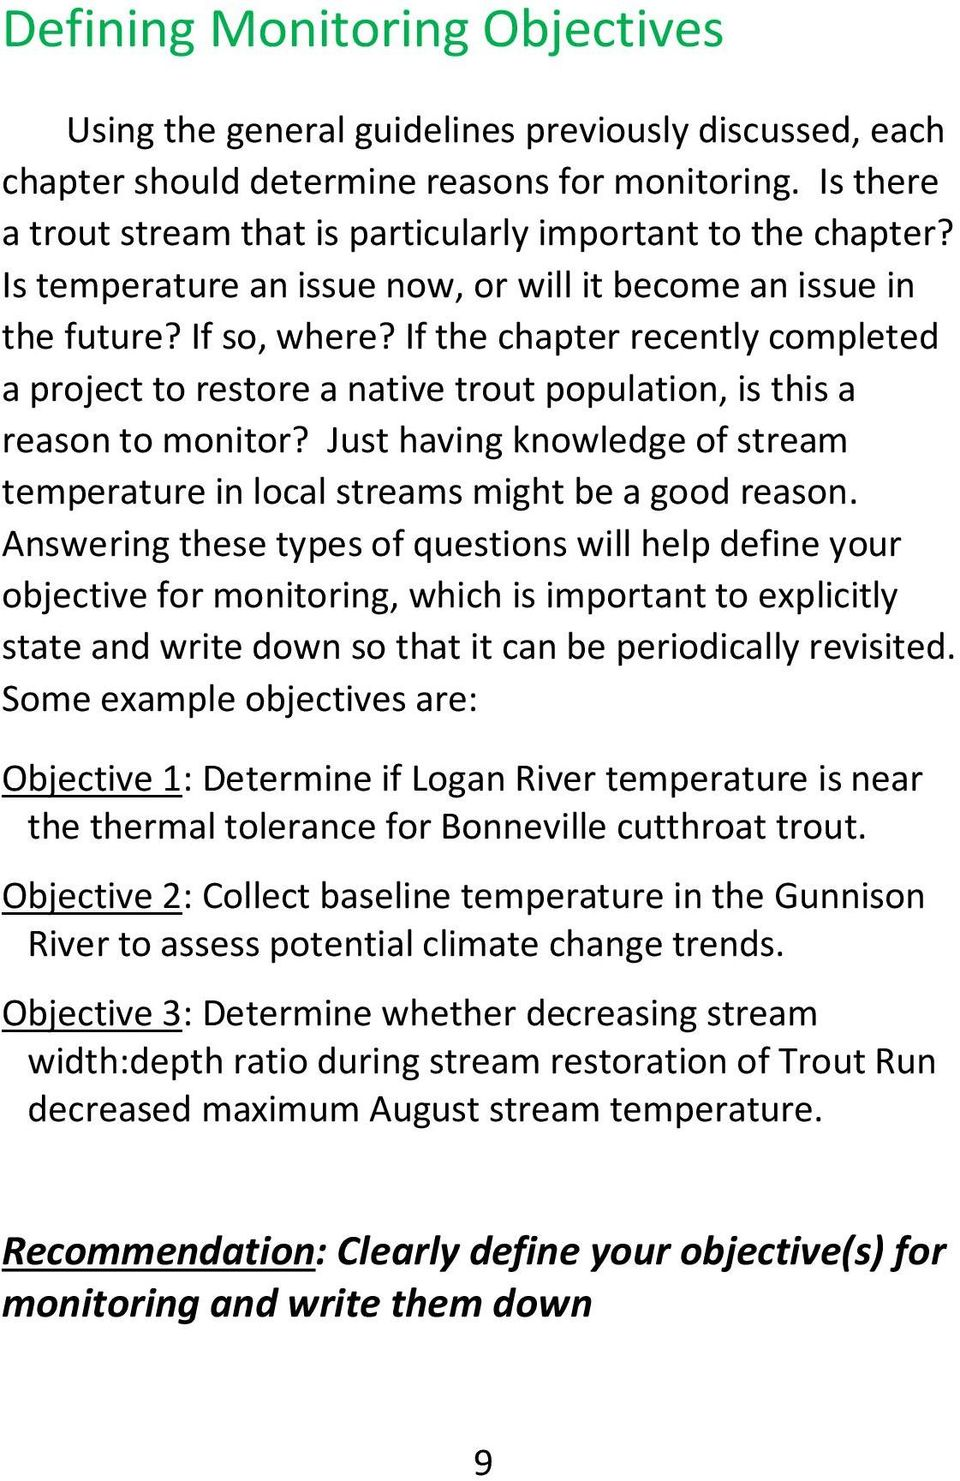 If the chapter recently completed a project to restore a native trout population, is this a reason to monitor? Just having knowledge of stream temperature in local streams might be a good reason.